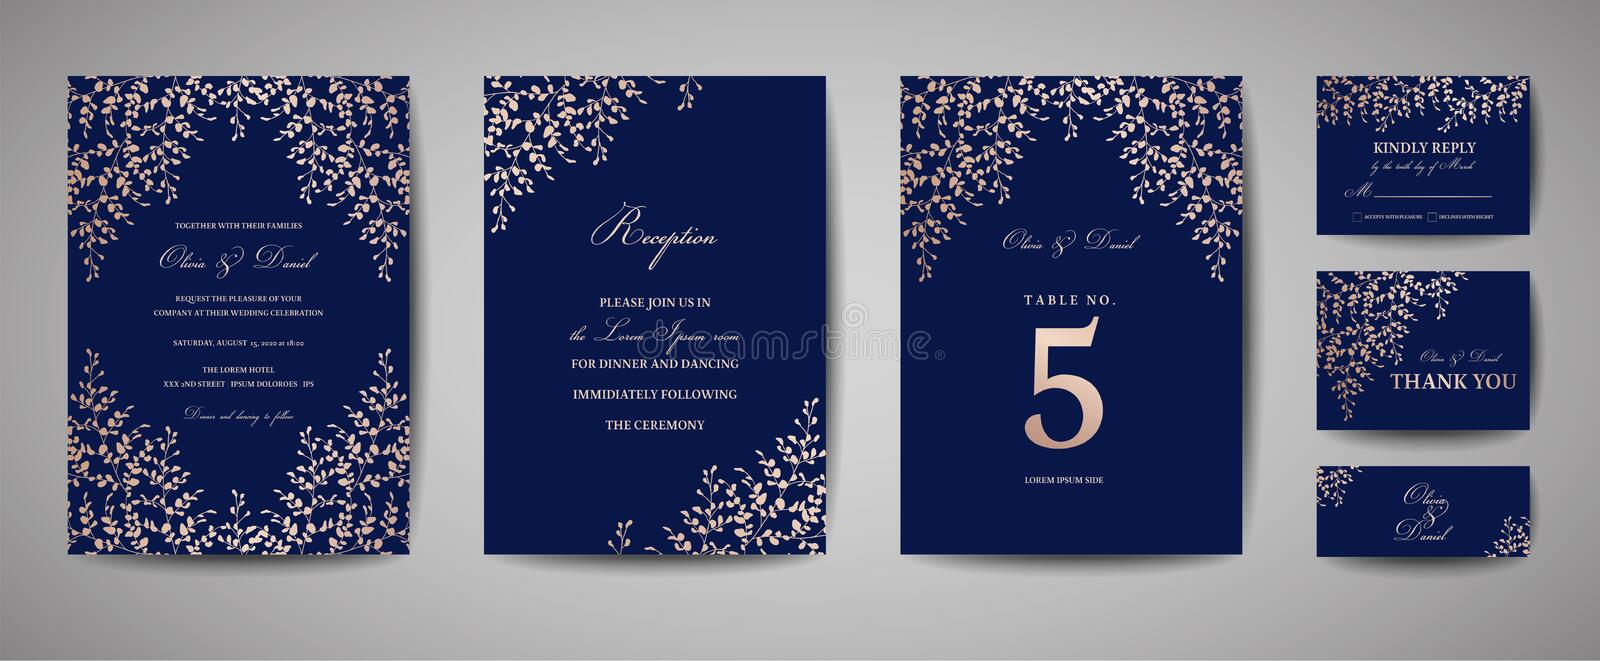 Luxury Wedding Save the Date, Invitation Navy Cards Collection with Gold Foil Leaves and Wreath. trendy cover royalty free illustration